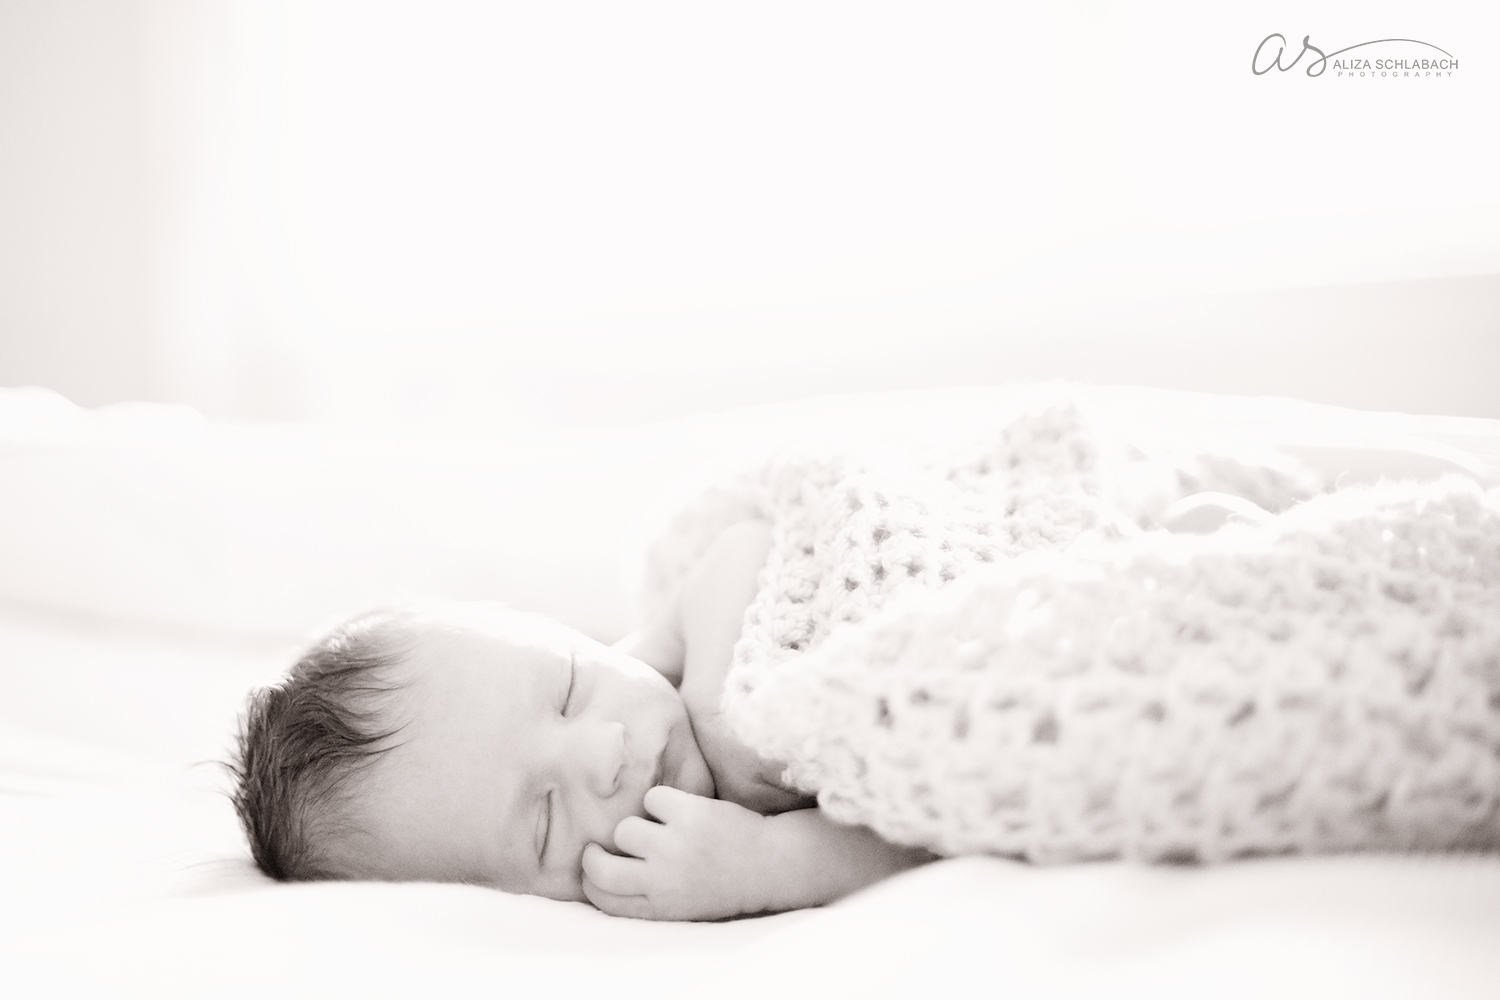 black and white photo of a newborn baby on a white bed, white background, soft crocheted blanket